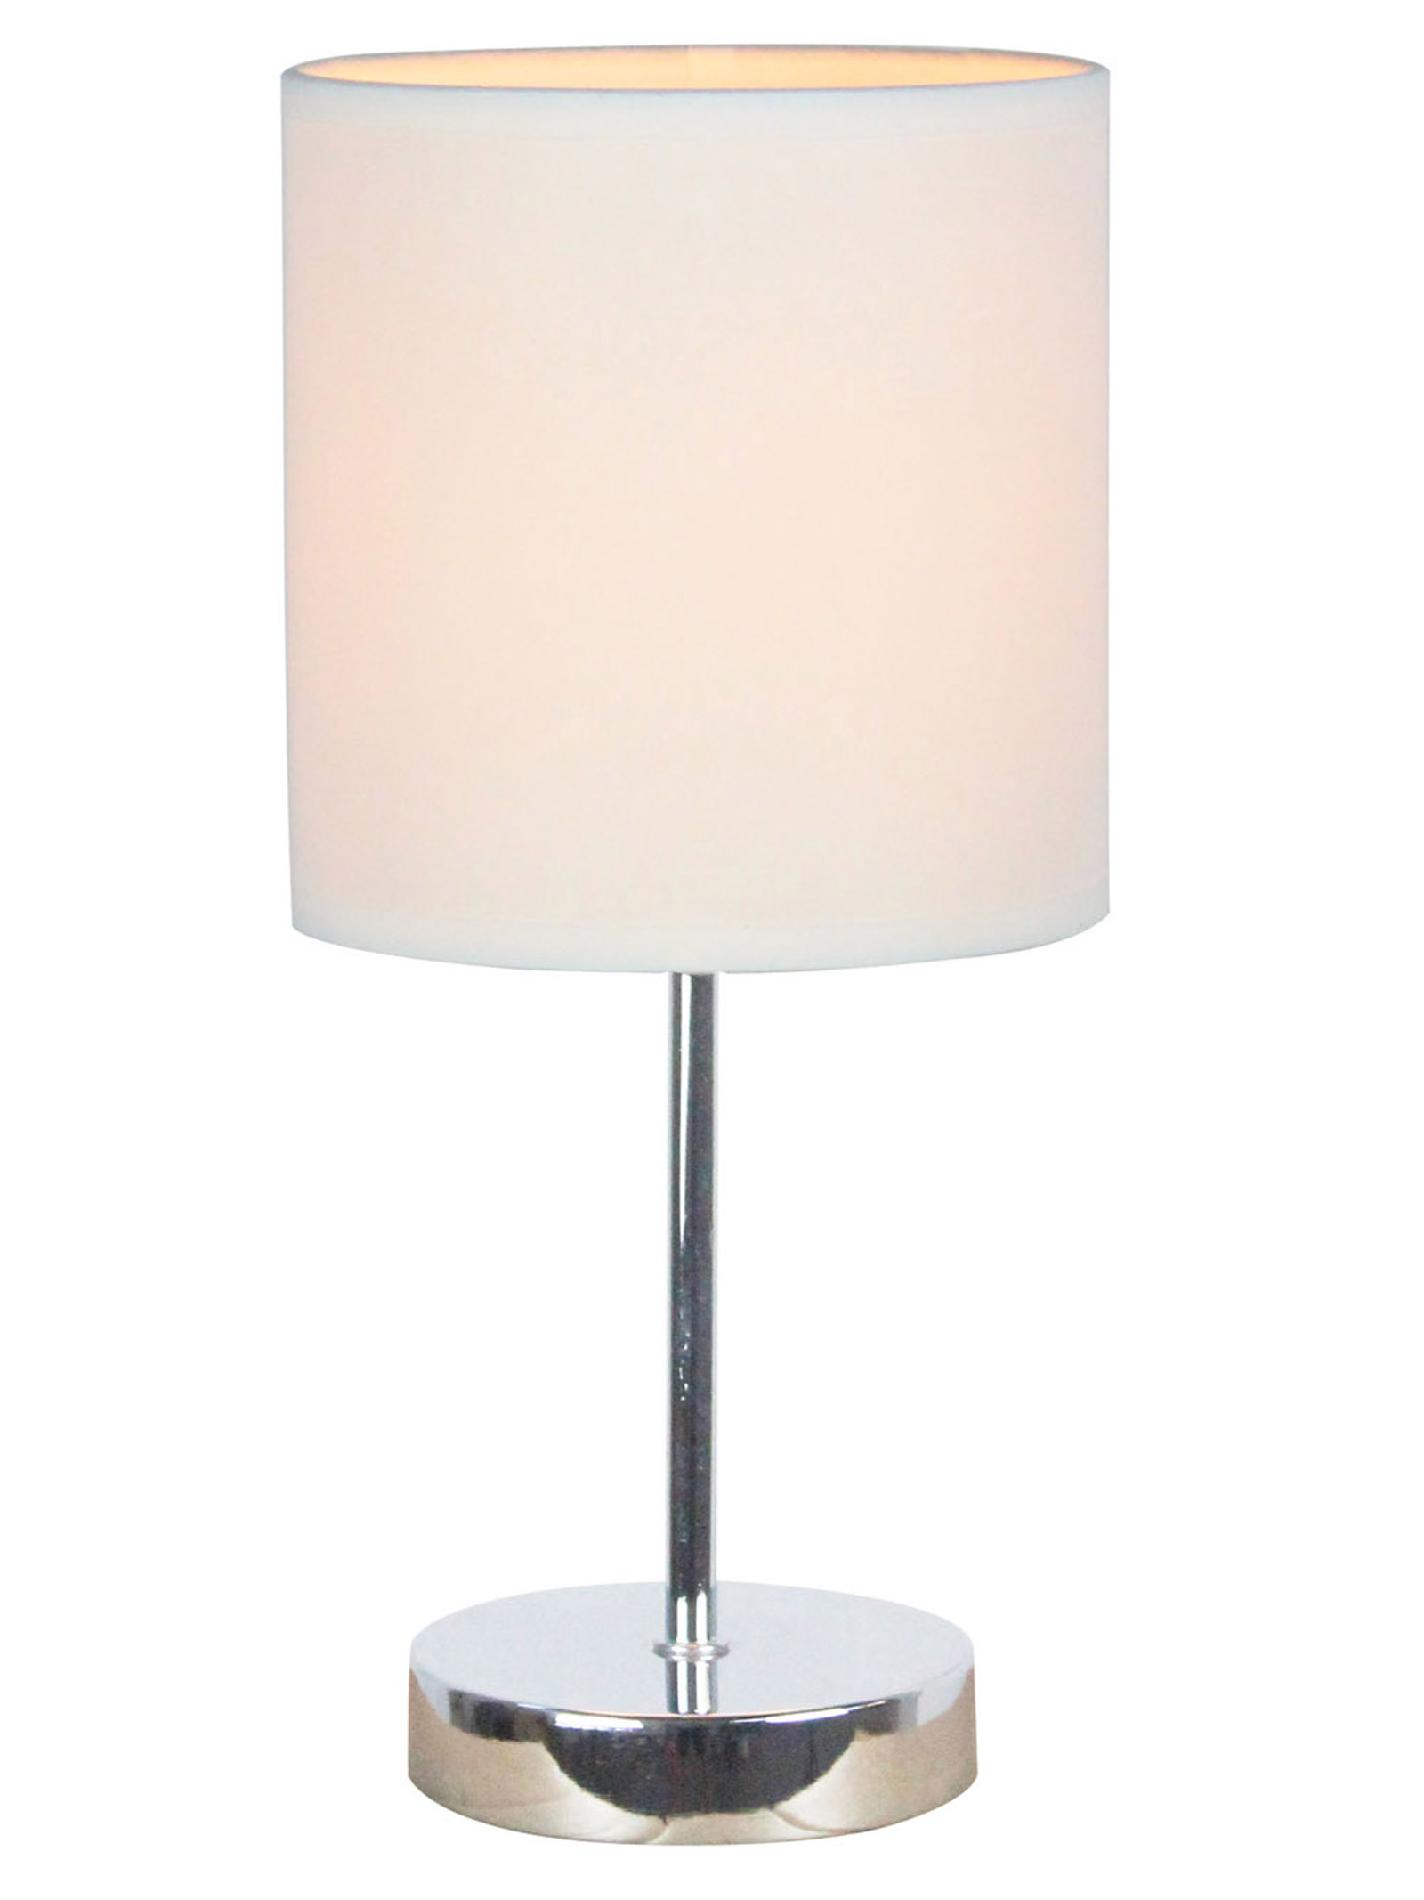 Simple Table Lamp Simple Designs Chrome Mini Basic Table Lamp With White Shade